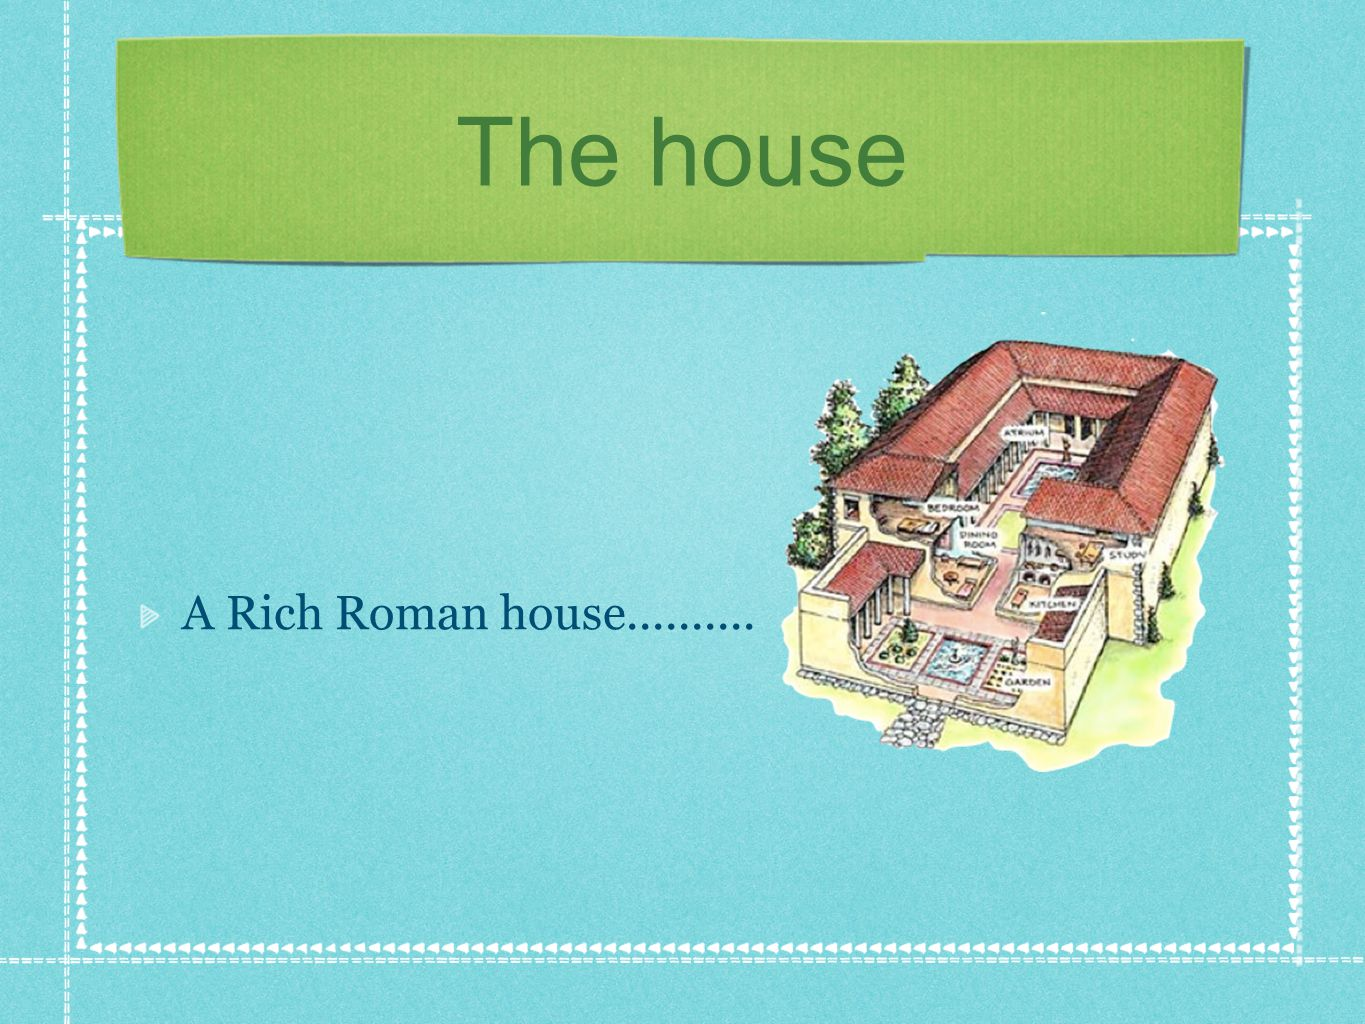 The house A Rich Roman house..........